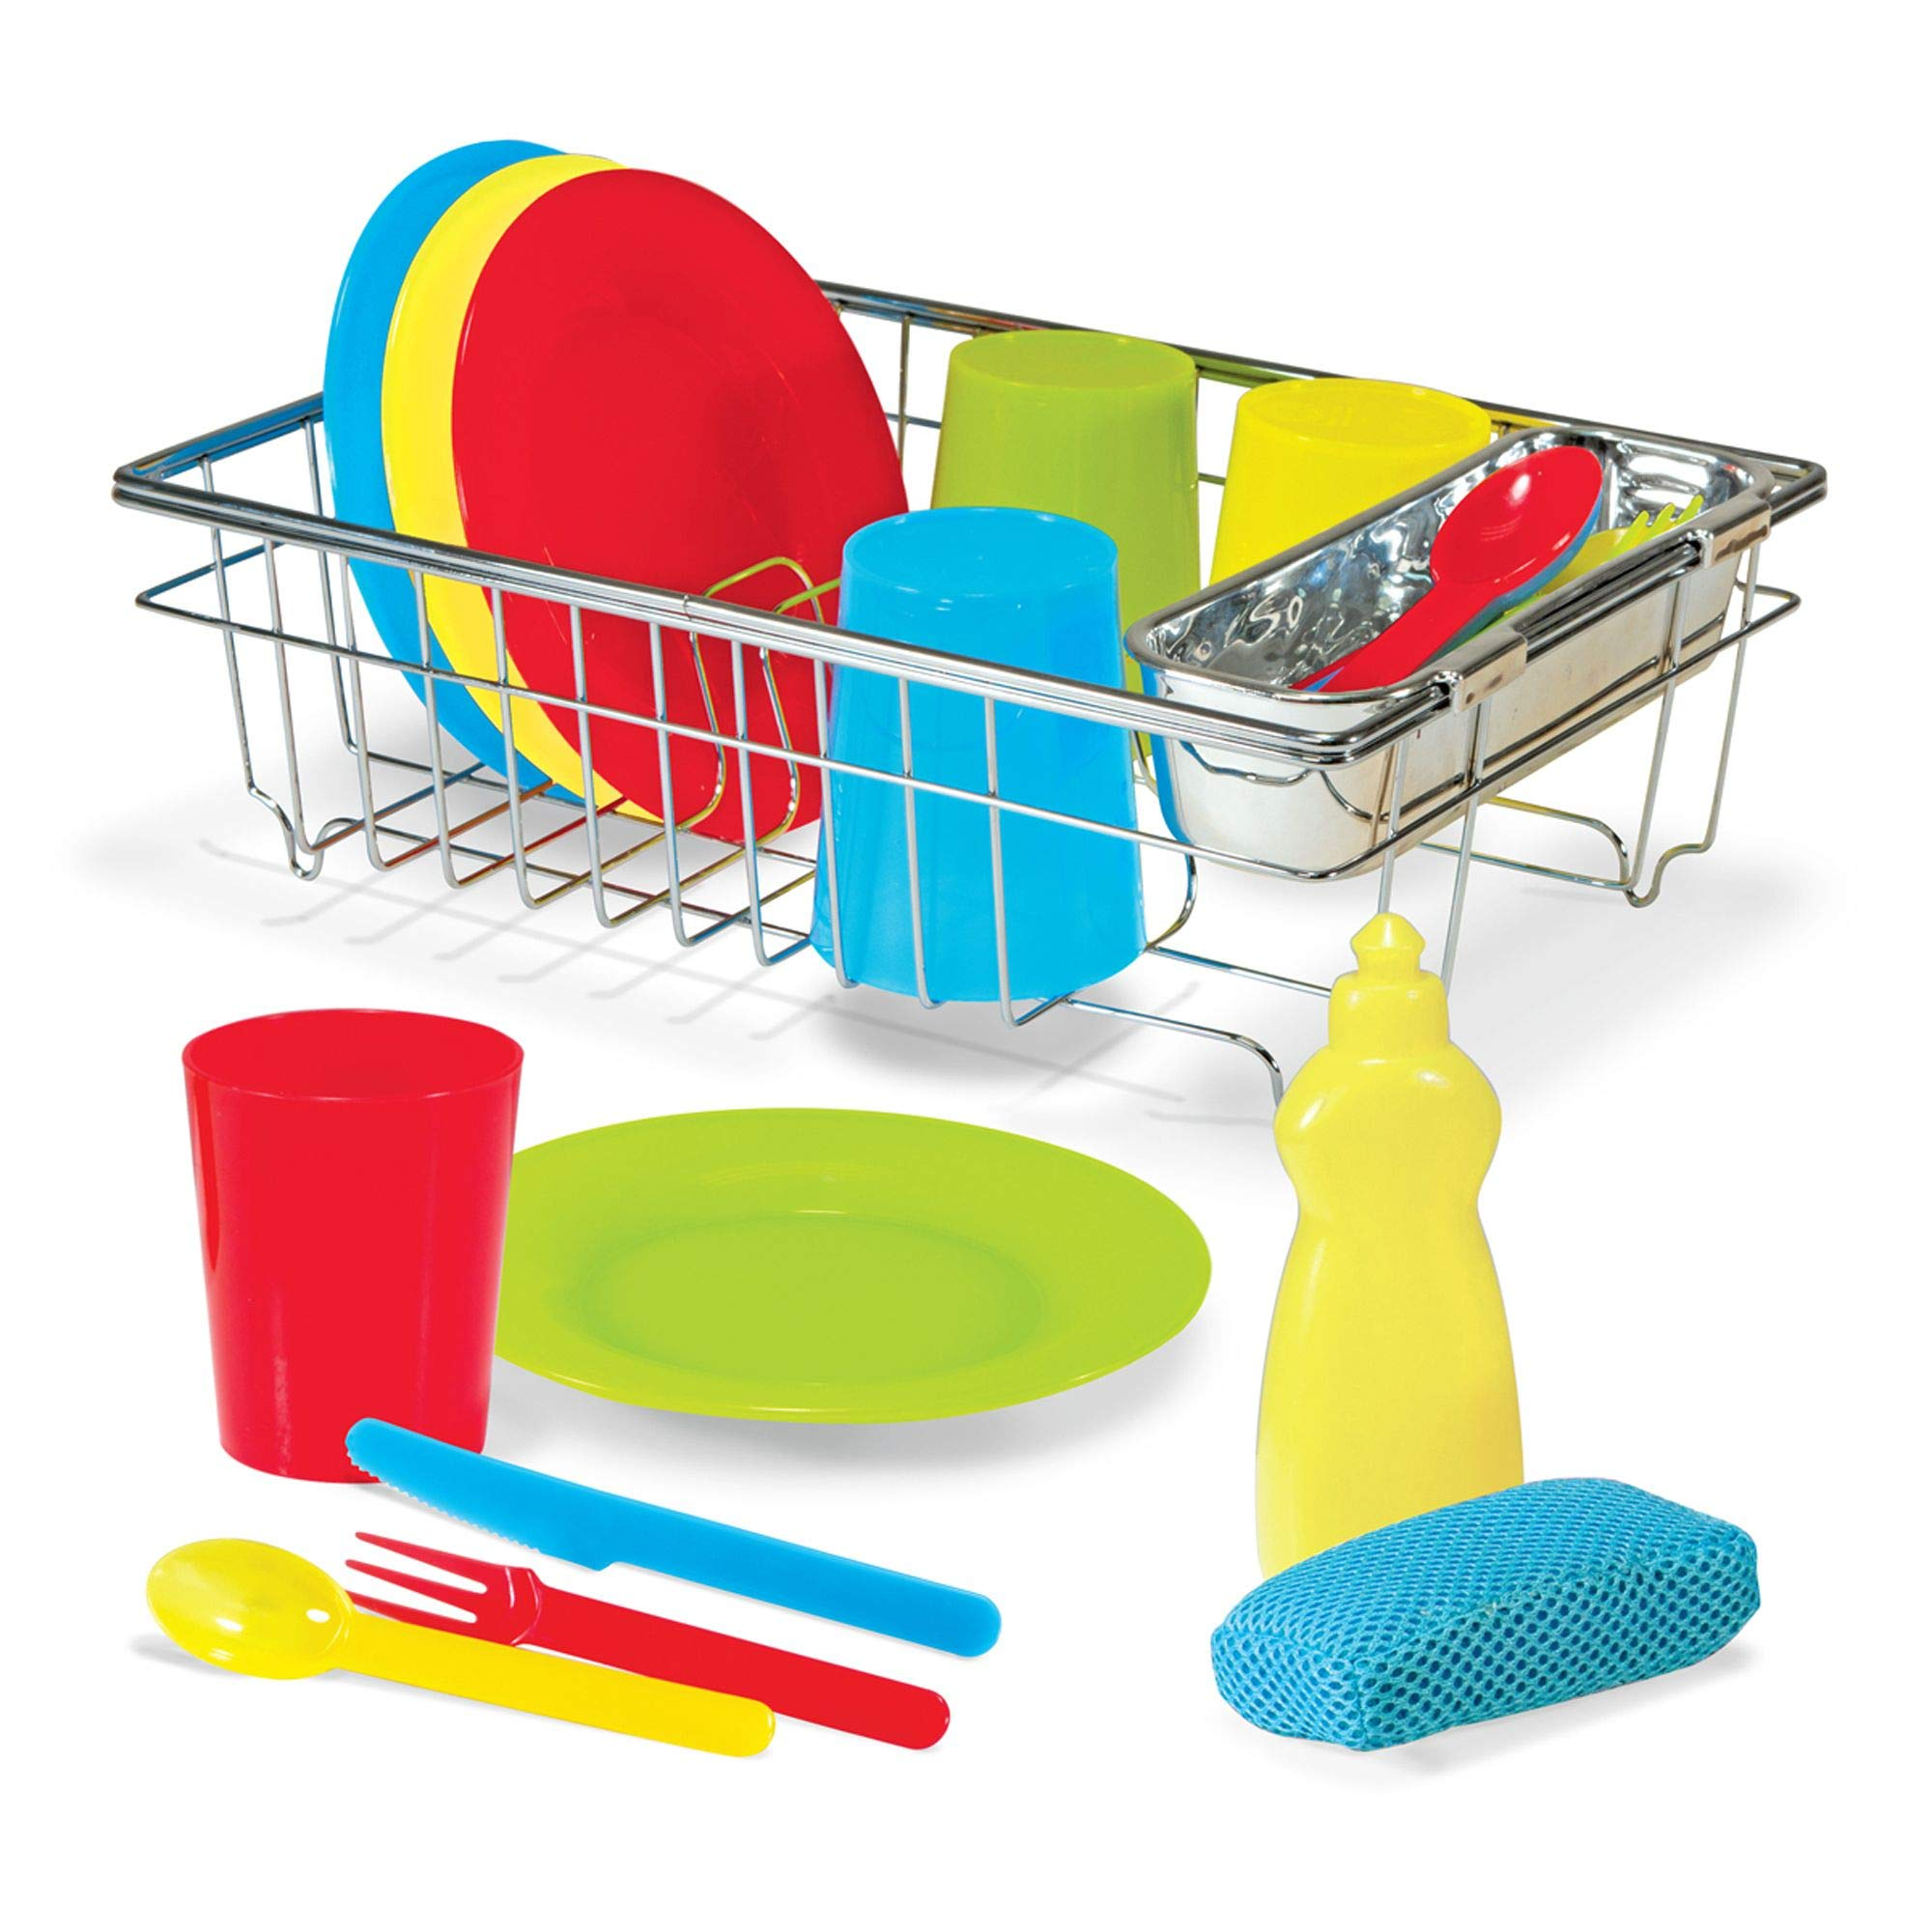 Melissa & Doug Let's Play House! Wash & Dry Dish Set, 4 Place Settings, Use with Kitchen Set or Stand-Alone, 24 Pieces, 4'' H x 11.5'' W x 8.5'' L by Melissa & Doug